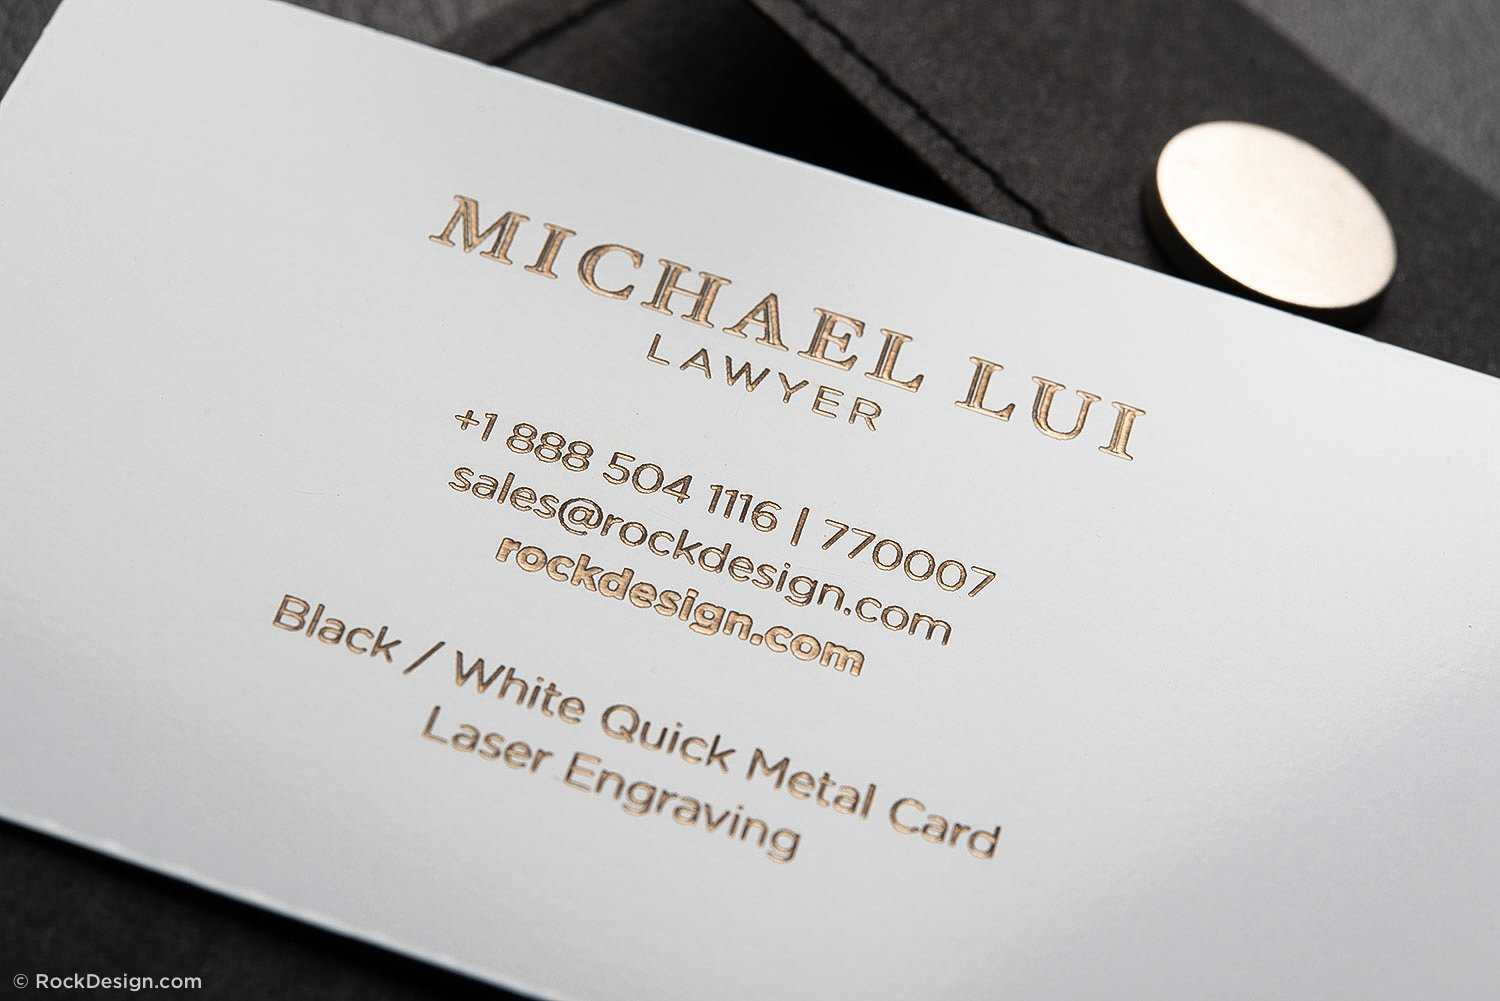 Luxury Metal Law Firm Free Black And White Business Card Regarding Legal Business Cards Templates Free